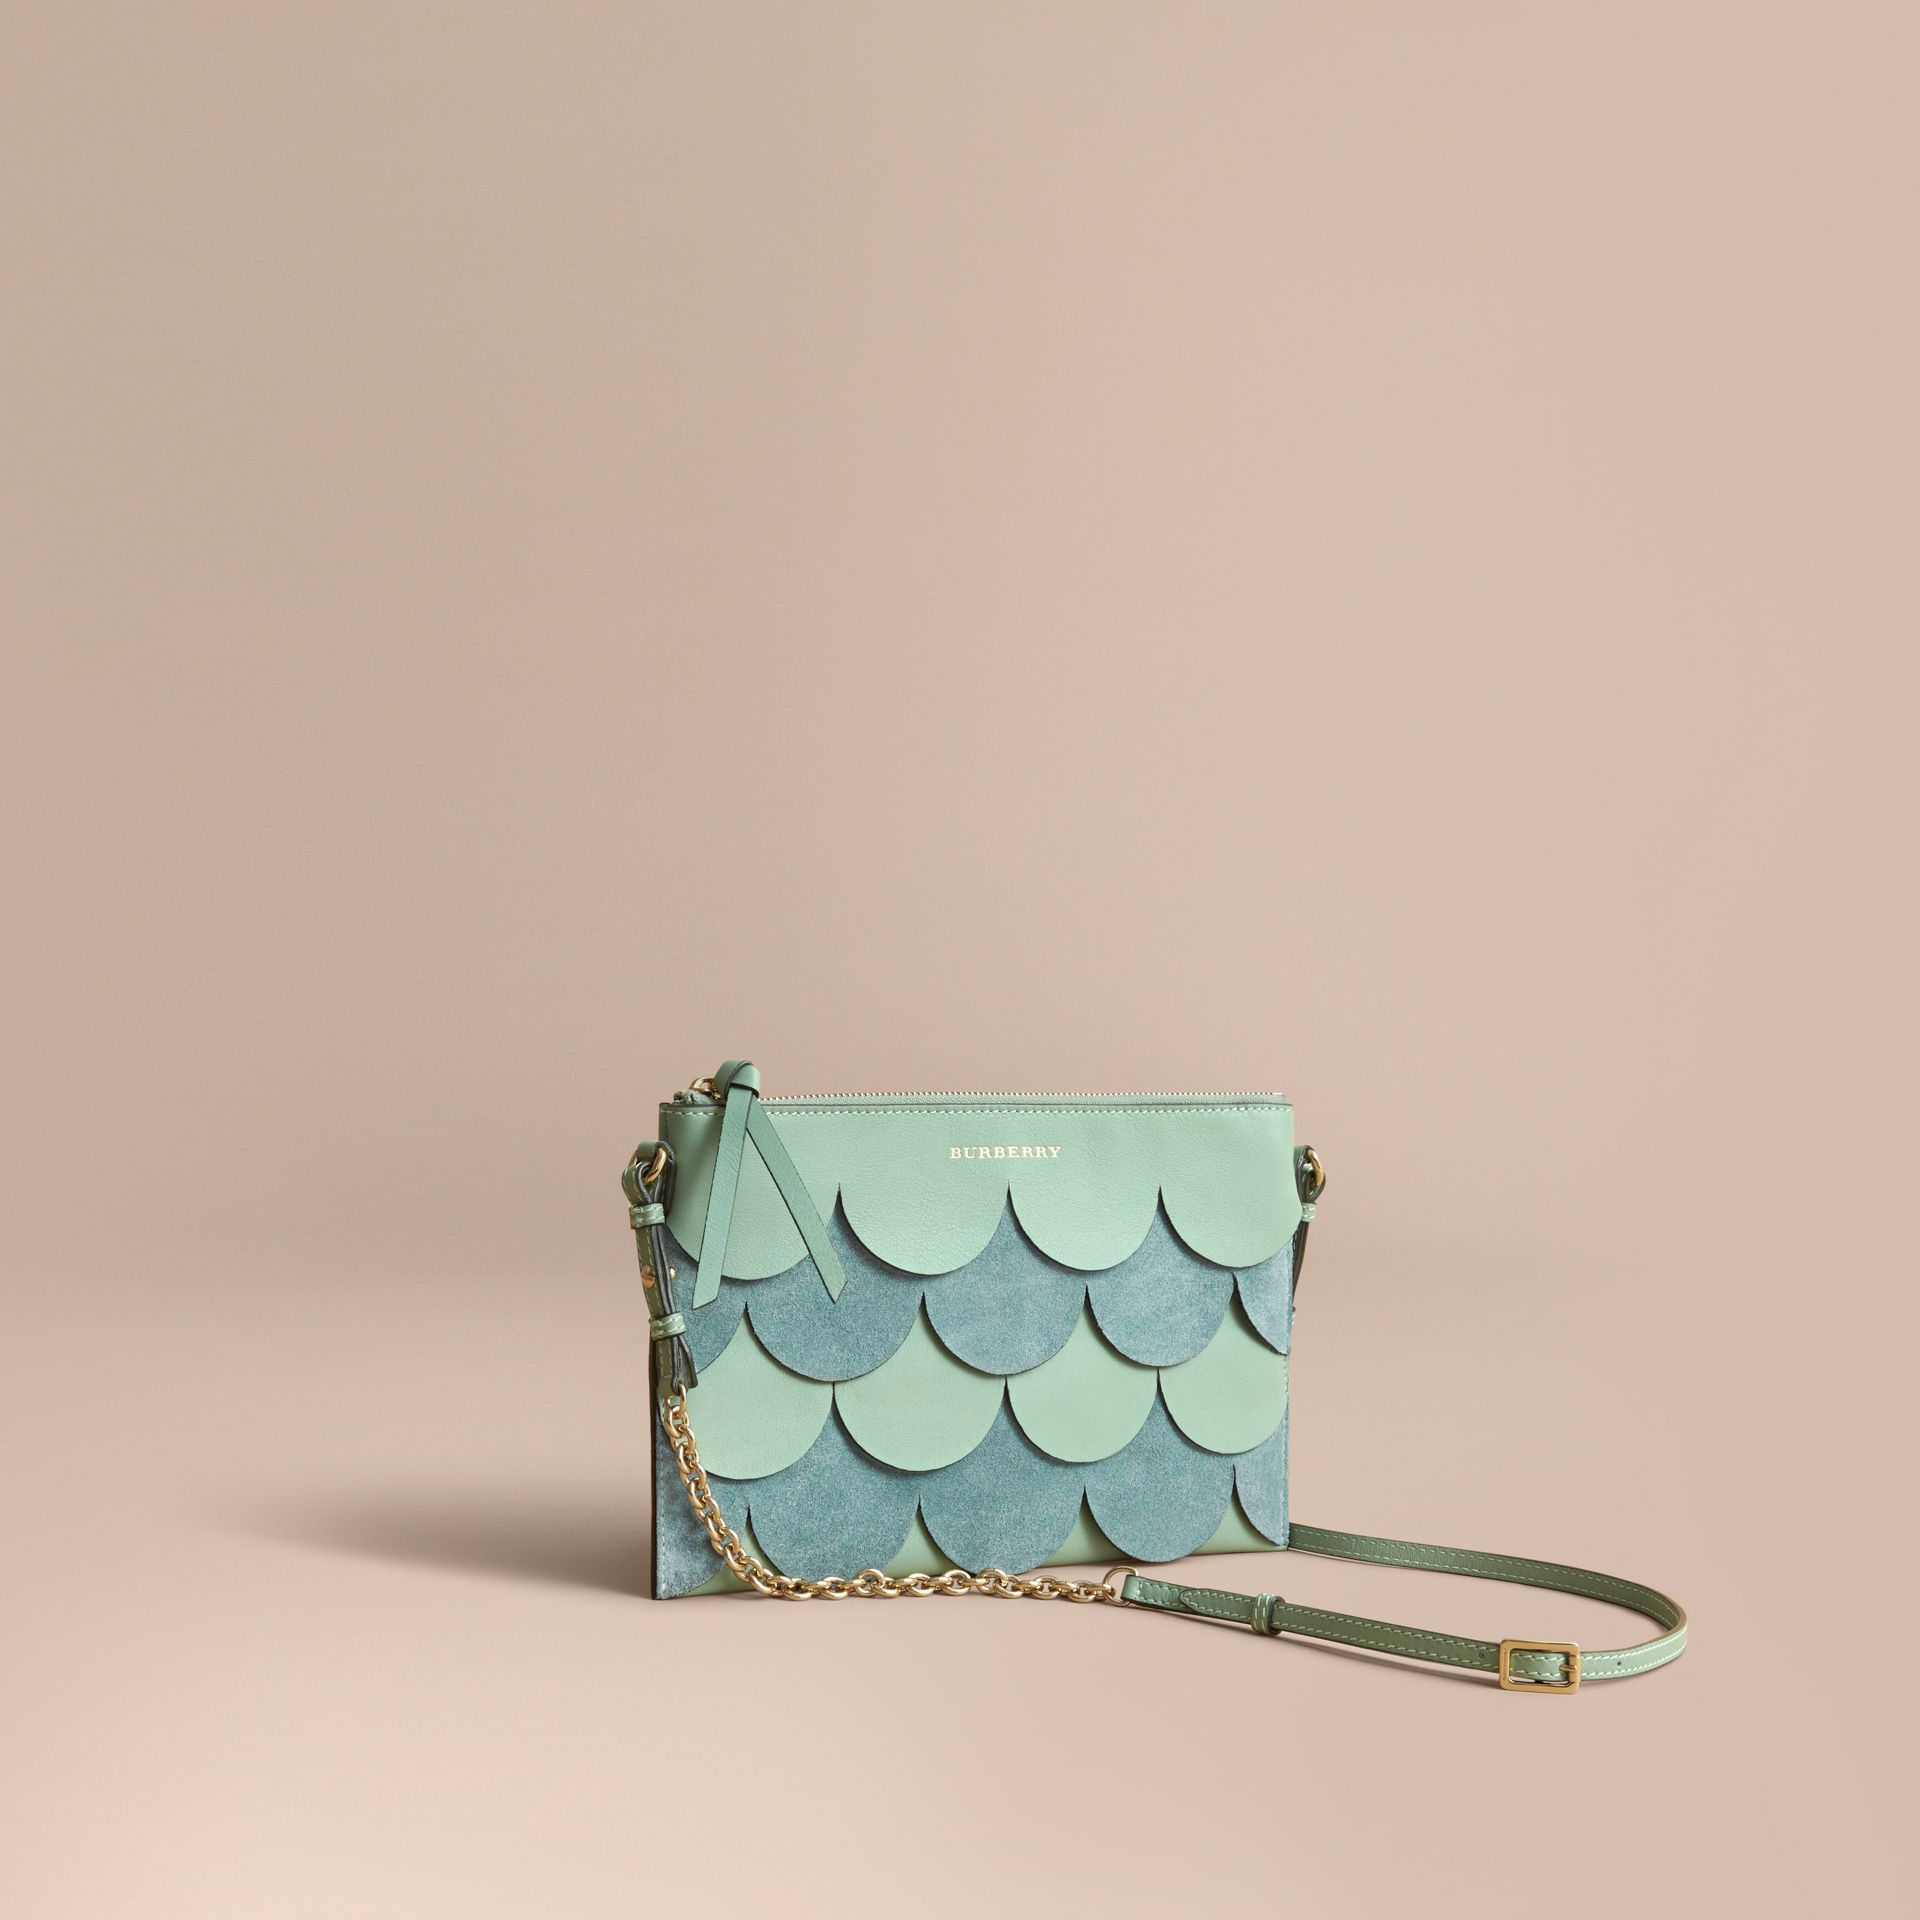 Two-tone Scalloped Leather and Suede Clutch Bag in Celadon Green - Women | Burberry Australia - gallery image 1